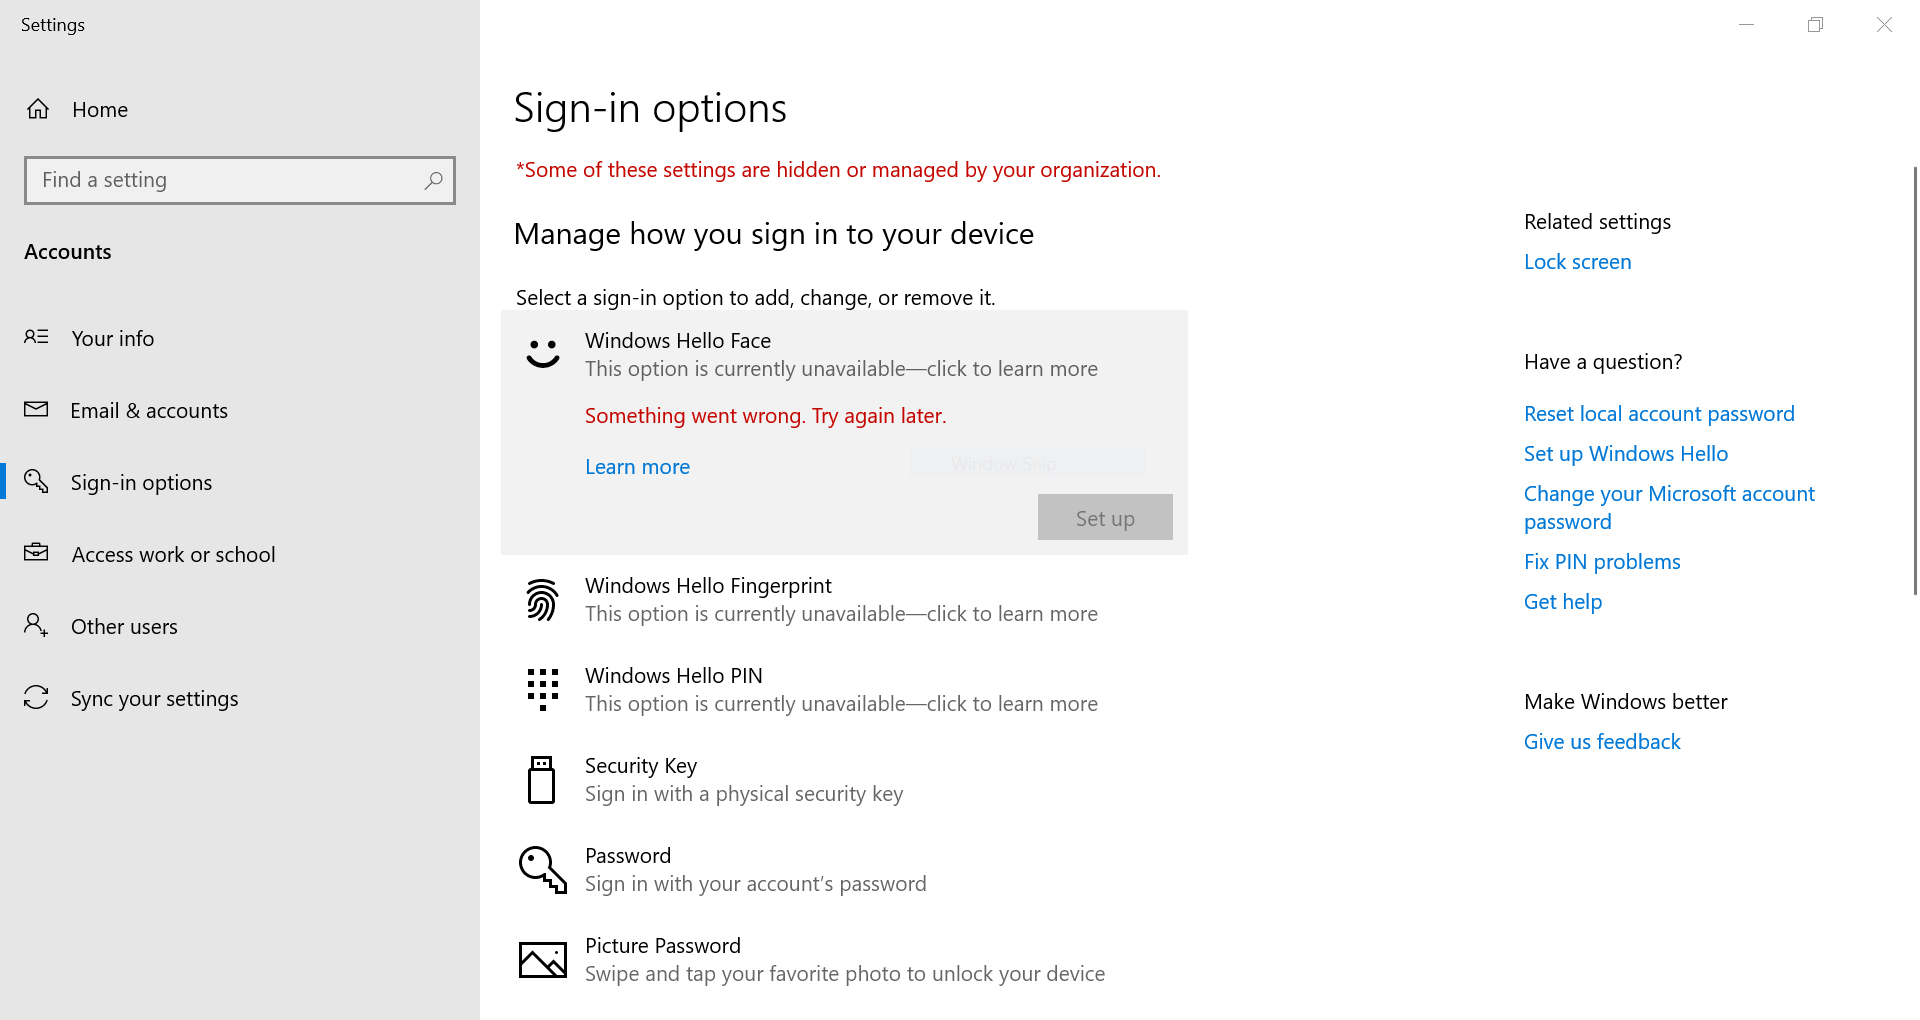 Windows Hello Not Working in Windows 10 1903 8107c1fe-c876-4565-956c-1ae96e84a3a8?upload=true.png